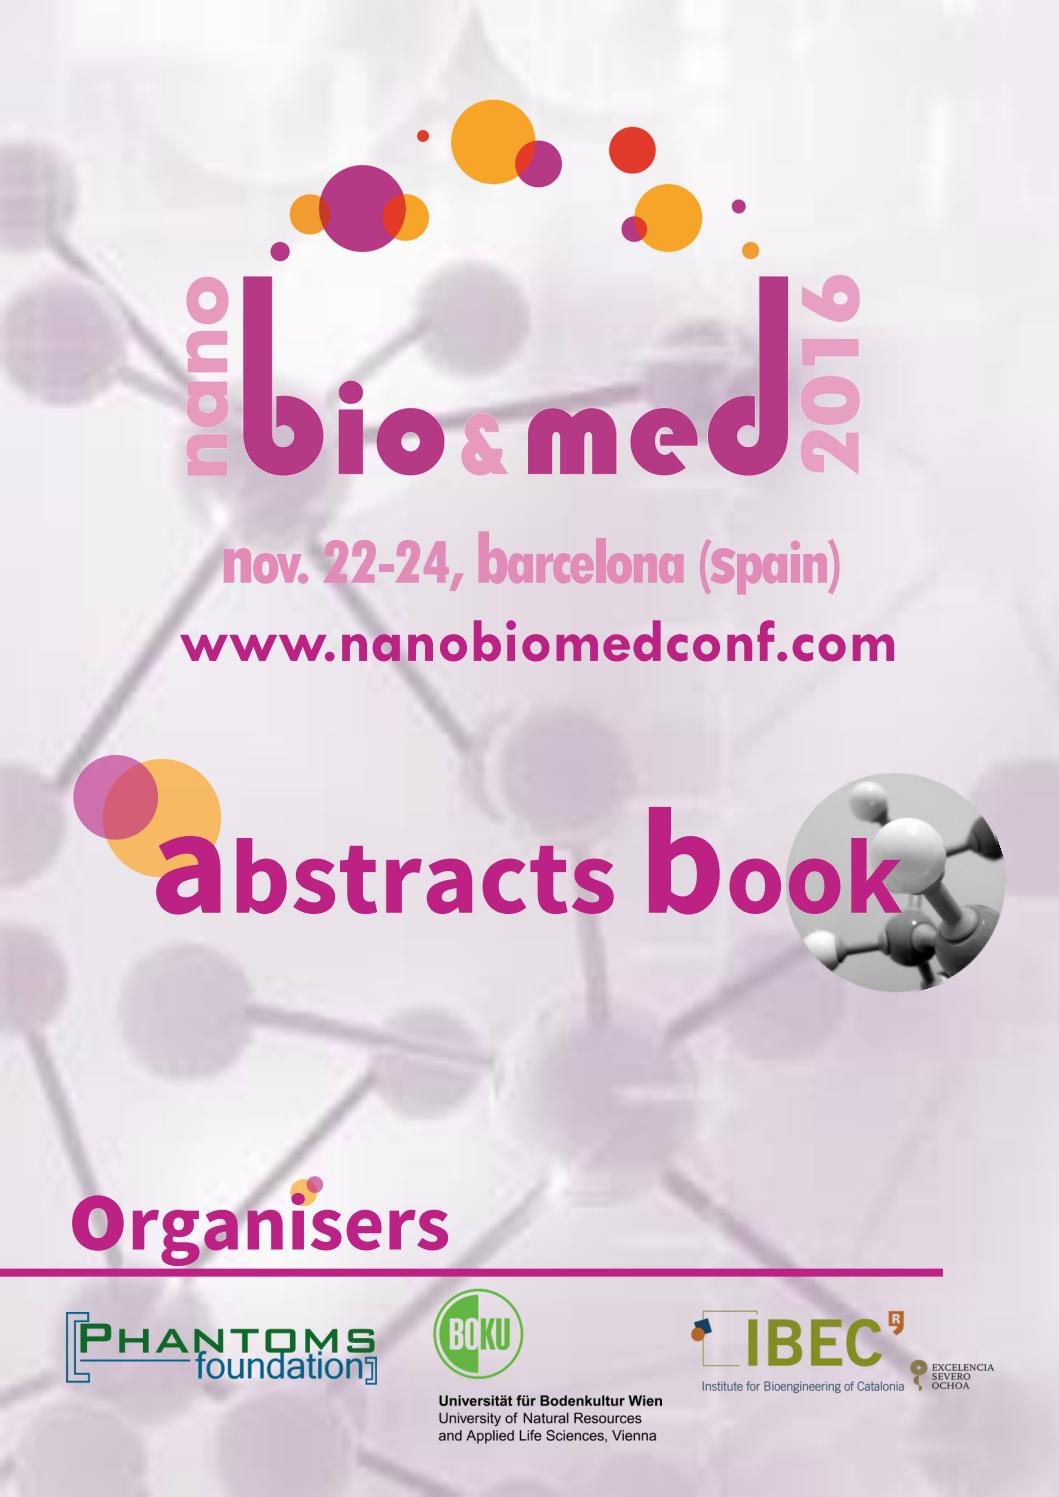 nanoBioMed2016 Conference Book by Phantoms Foundation - issuu